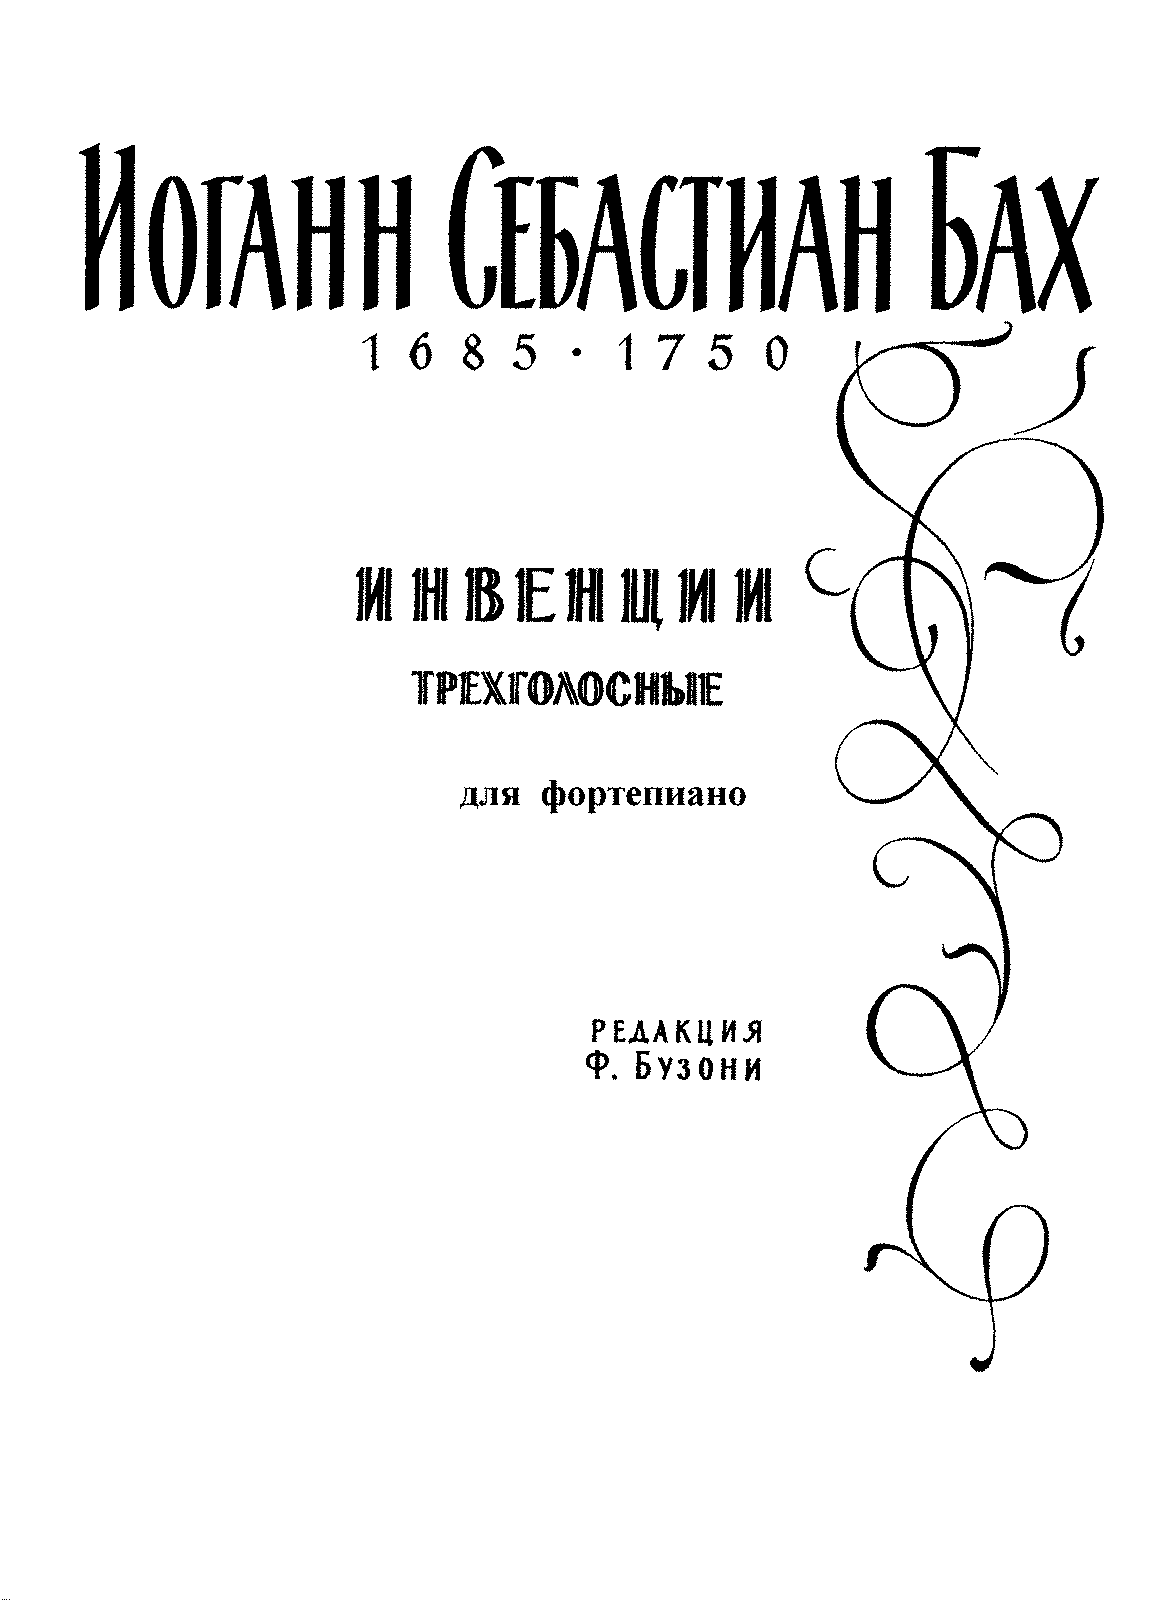 PMLP03268-Bach - Three-Part Inventions - Edition Busoni - Russian Text (38p).pdf